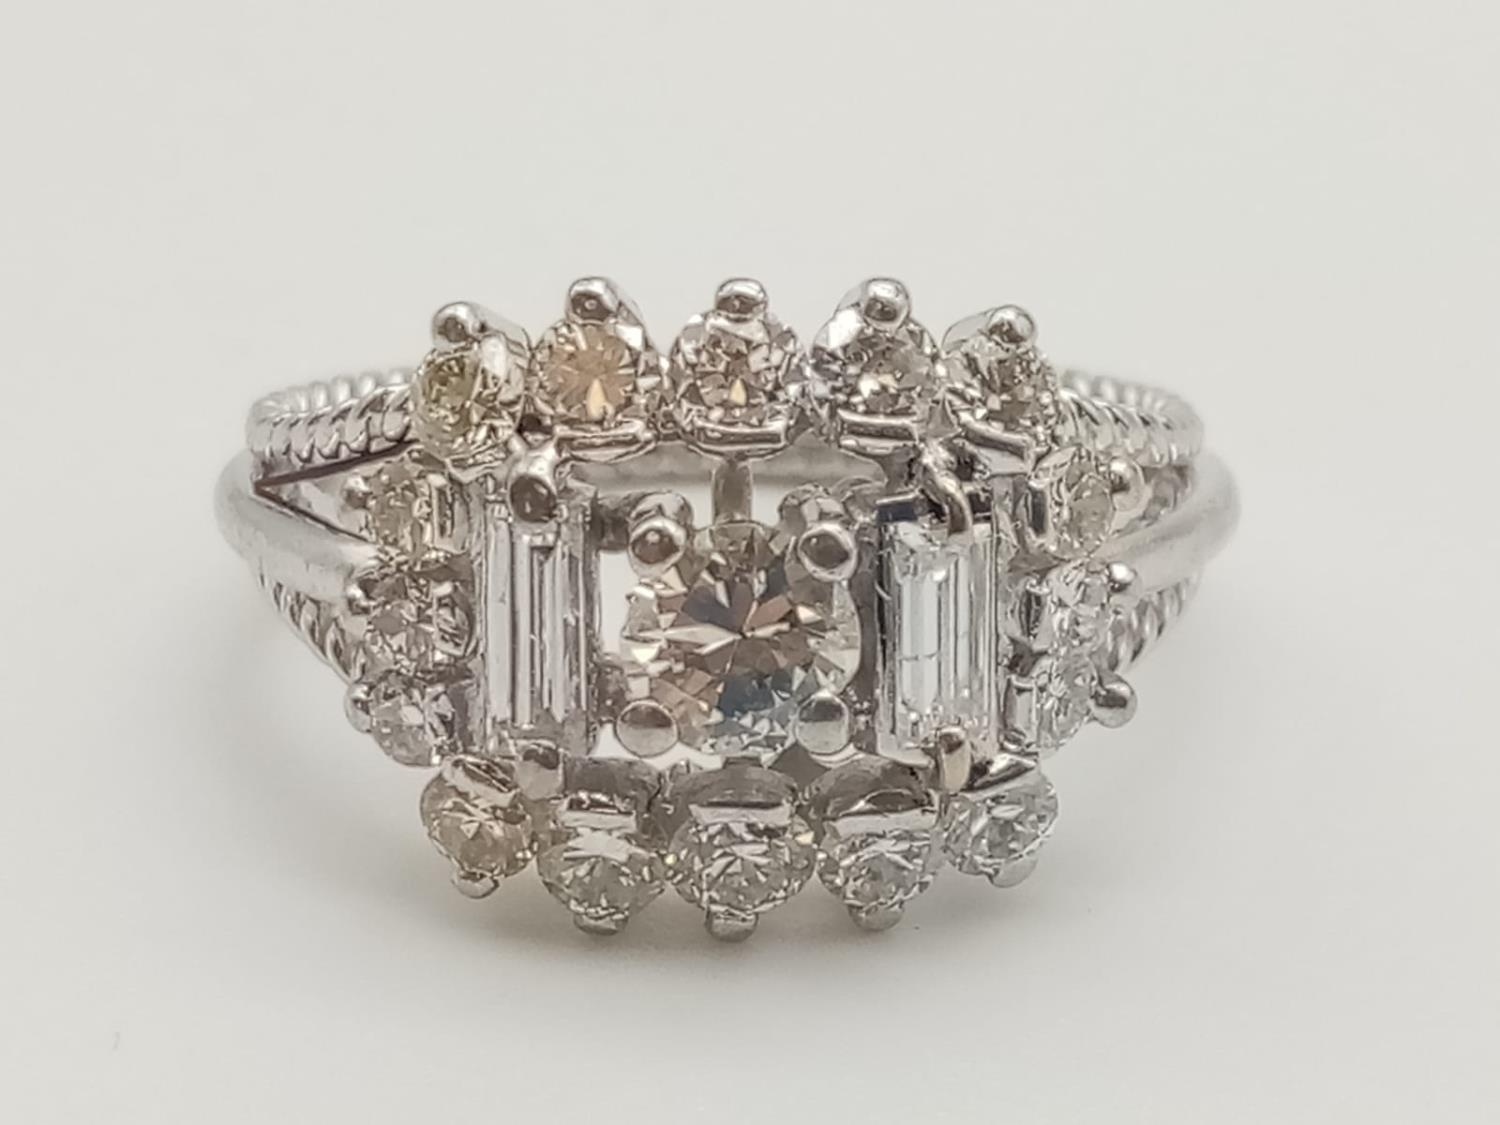 18k white gold diamond ring, WEIGHT 7.6G with over approx 2ct of top quality diamonds, size N1/2